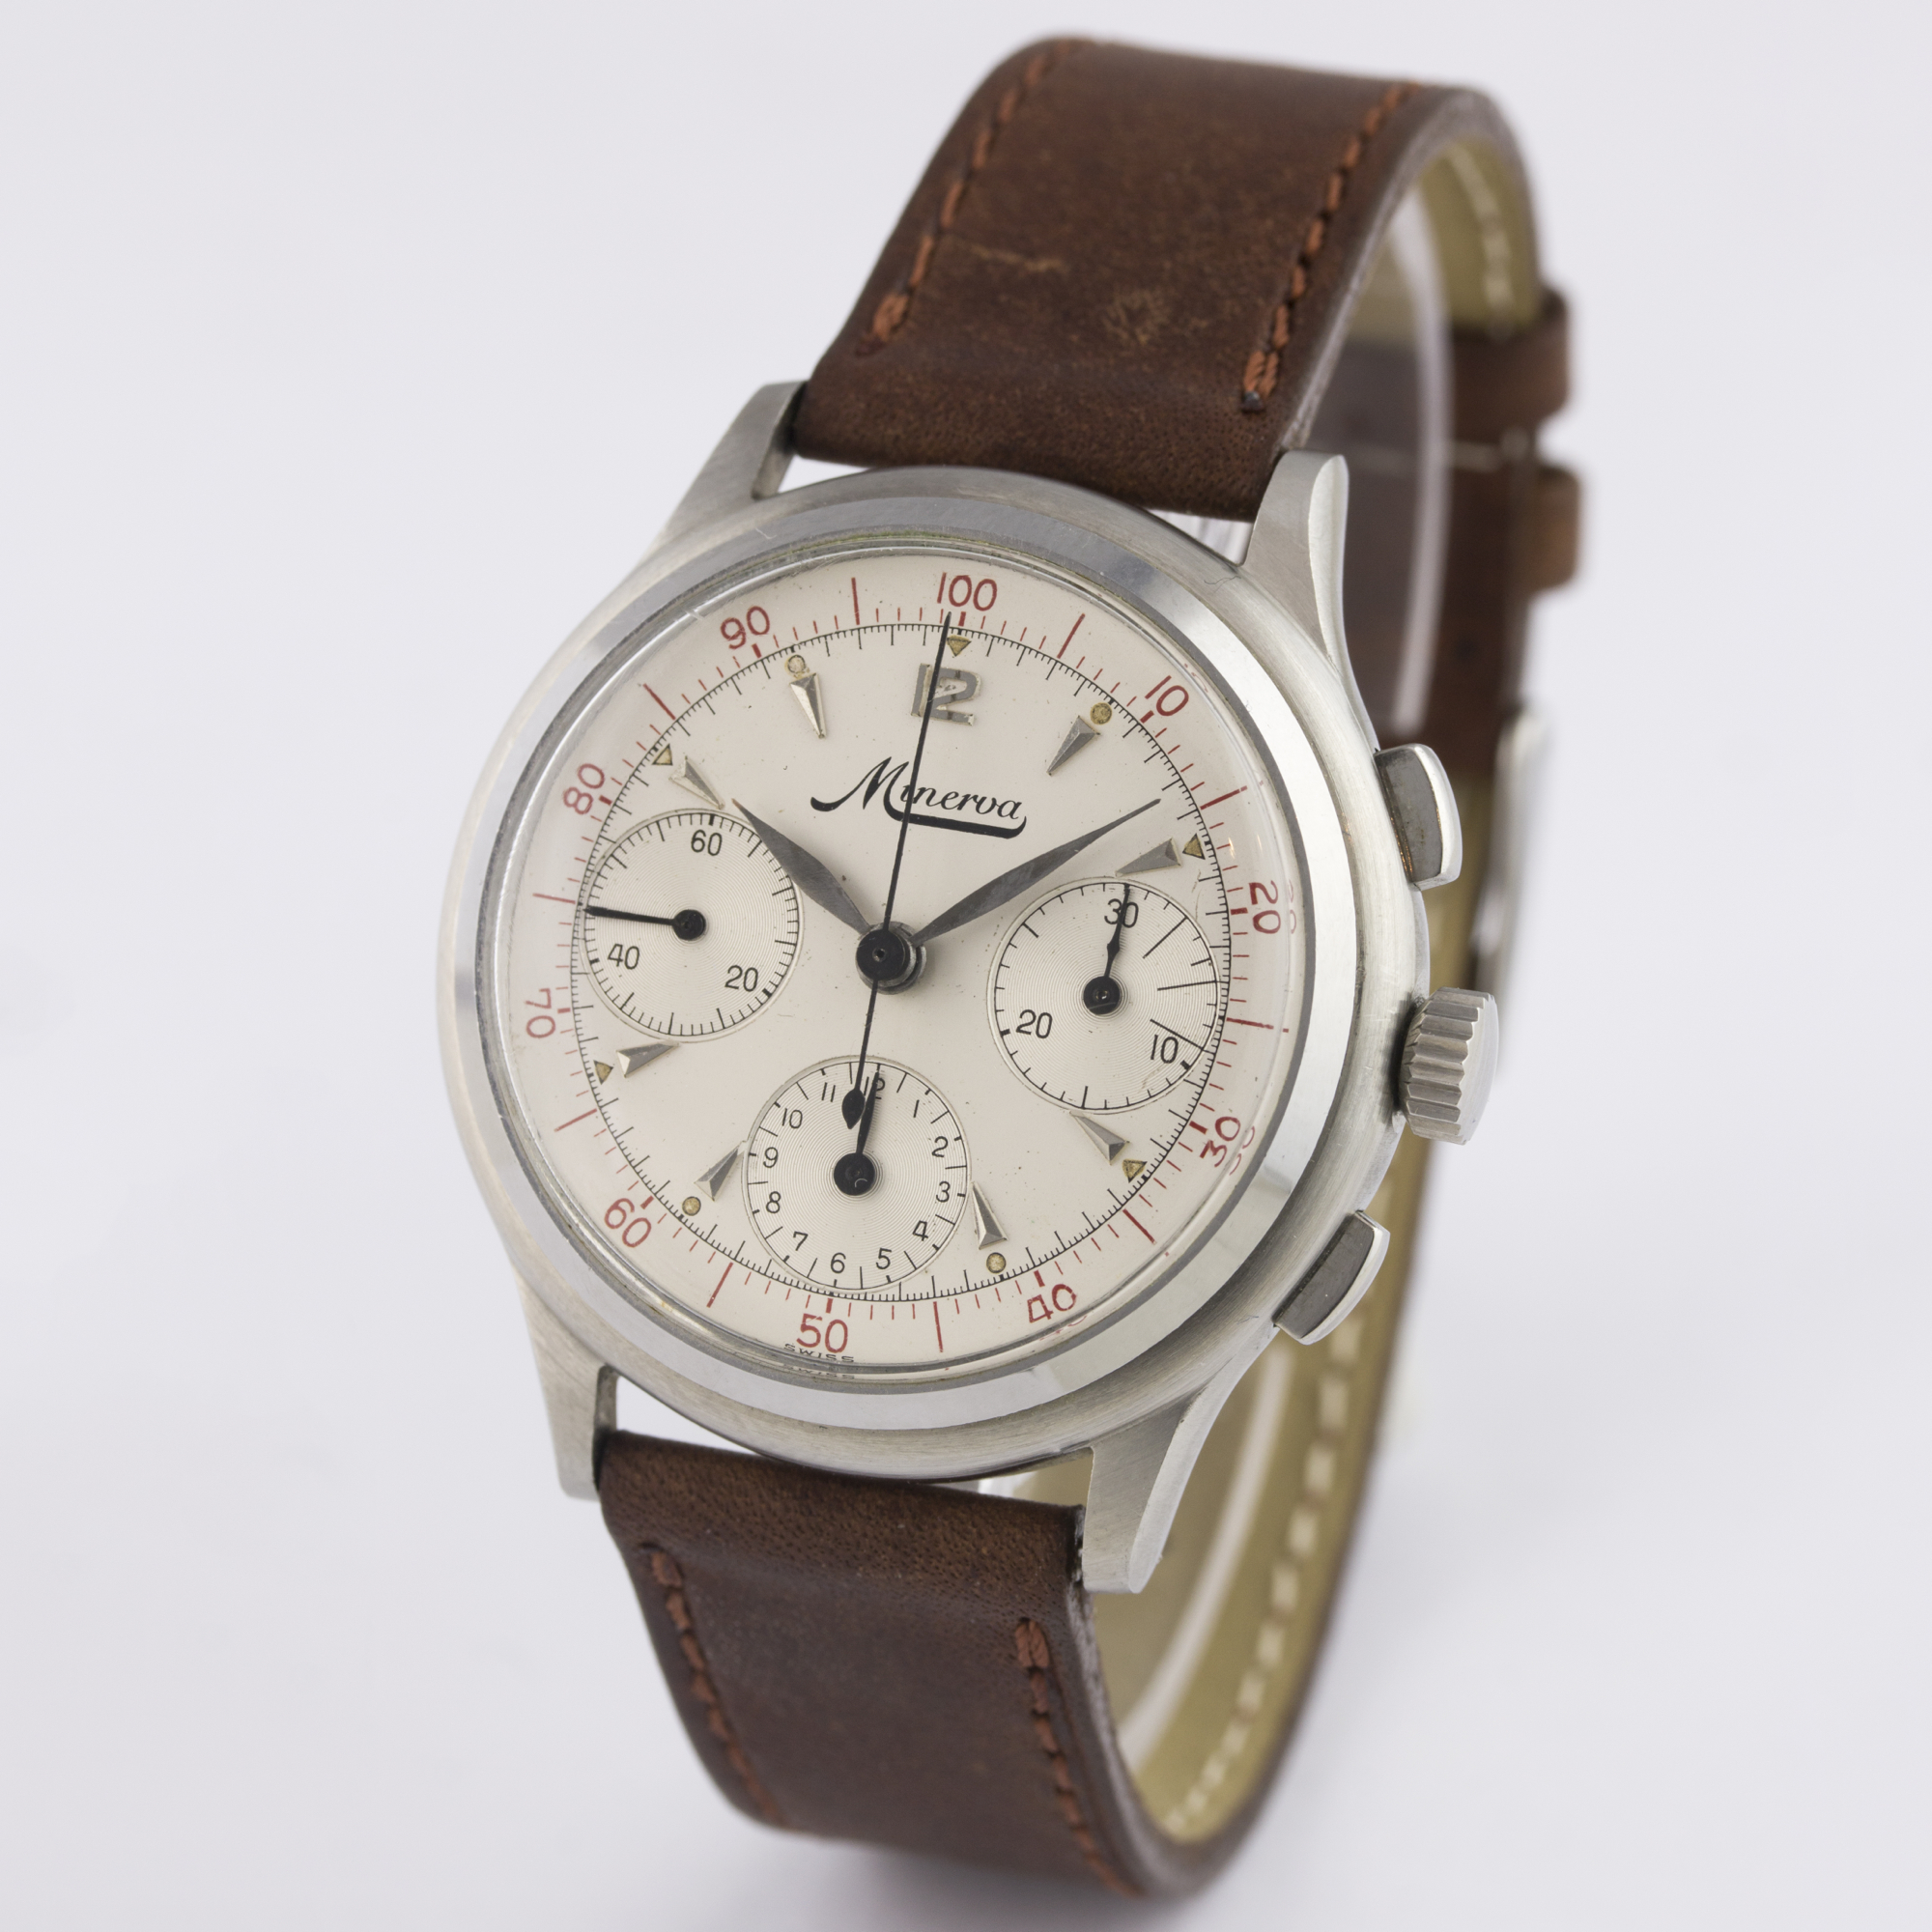 A RARE GENTLEMAN'S STAINLESS STEEL MINERVA DECIMAL CHRONOGRAPH WRIST WATCH CIRCA 1950s D: Silver - Image 5 of 9